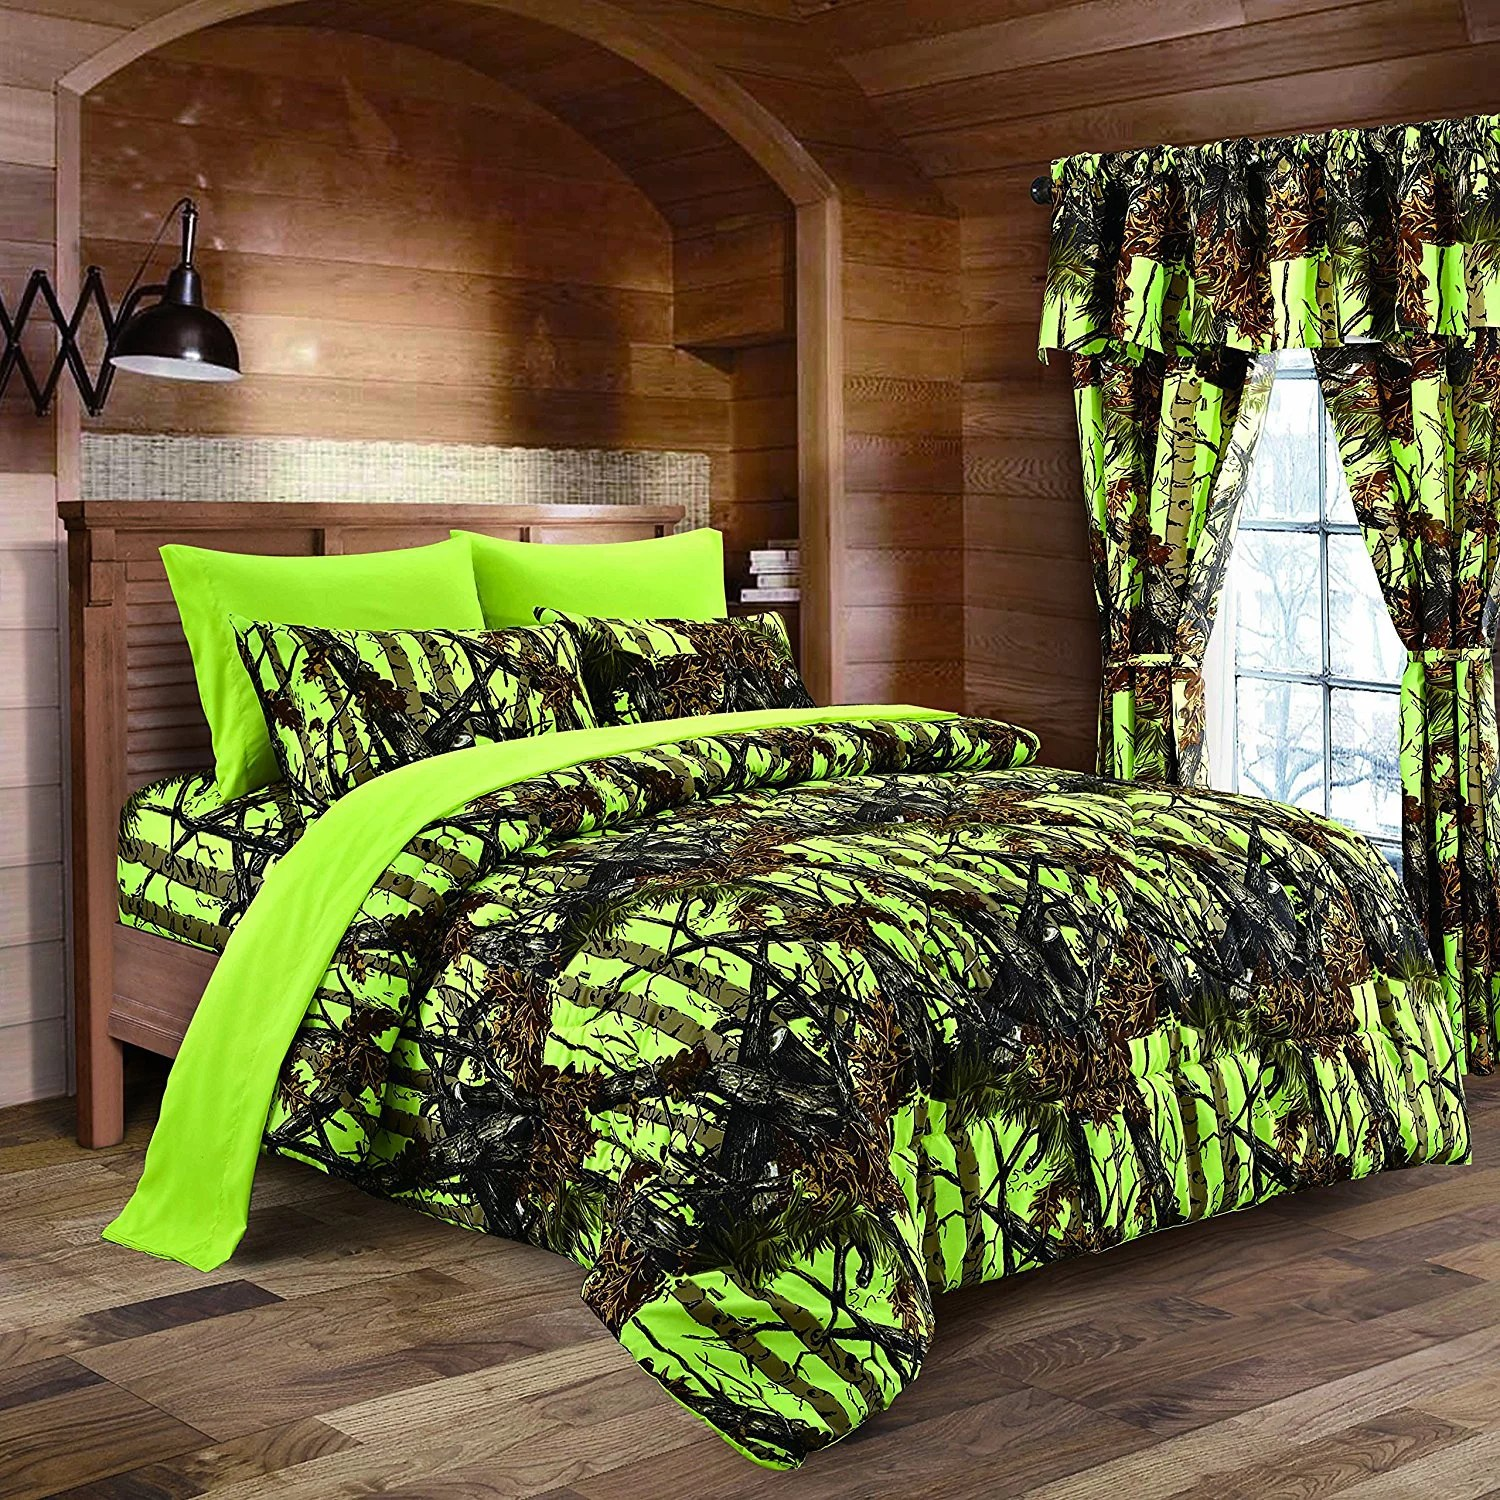 lime camouflage queen size 8pc comforter sheet pillowcases and bed skirt set camo bedding sheet set for hunters teens boys and girls